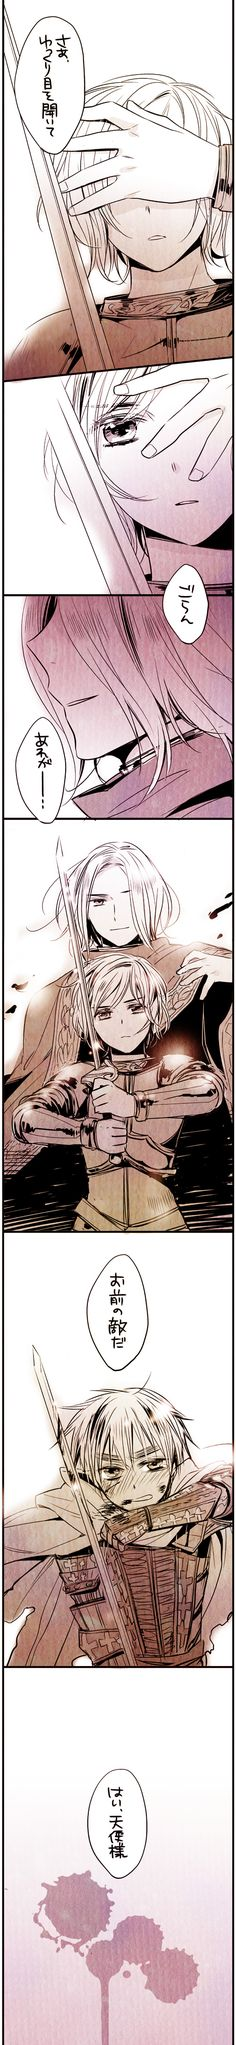 Francis, Jean d'Arc, and Arthur - I don't know enough Japanese to get all the details here, but it sure looks epic! - Art by Fuji